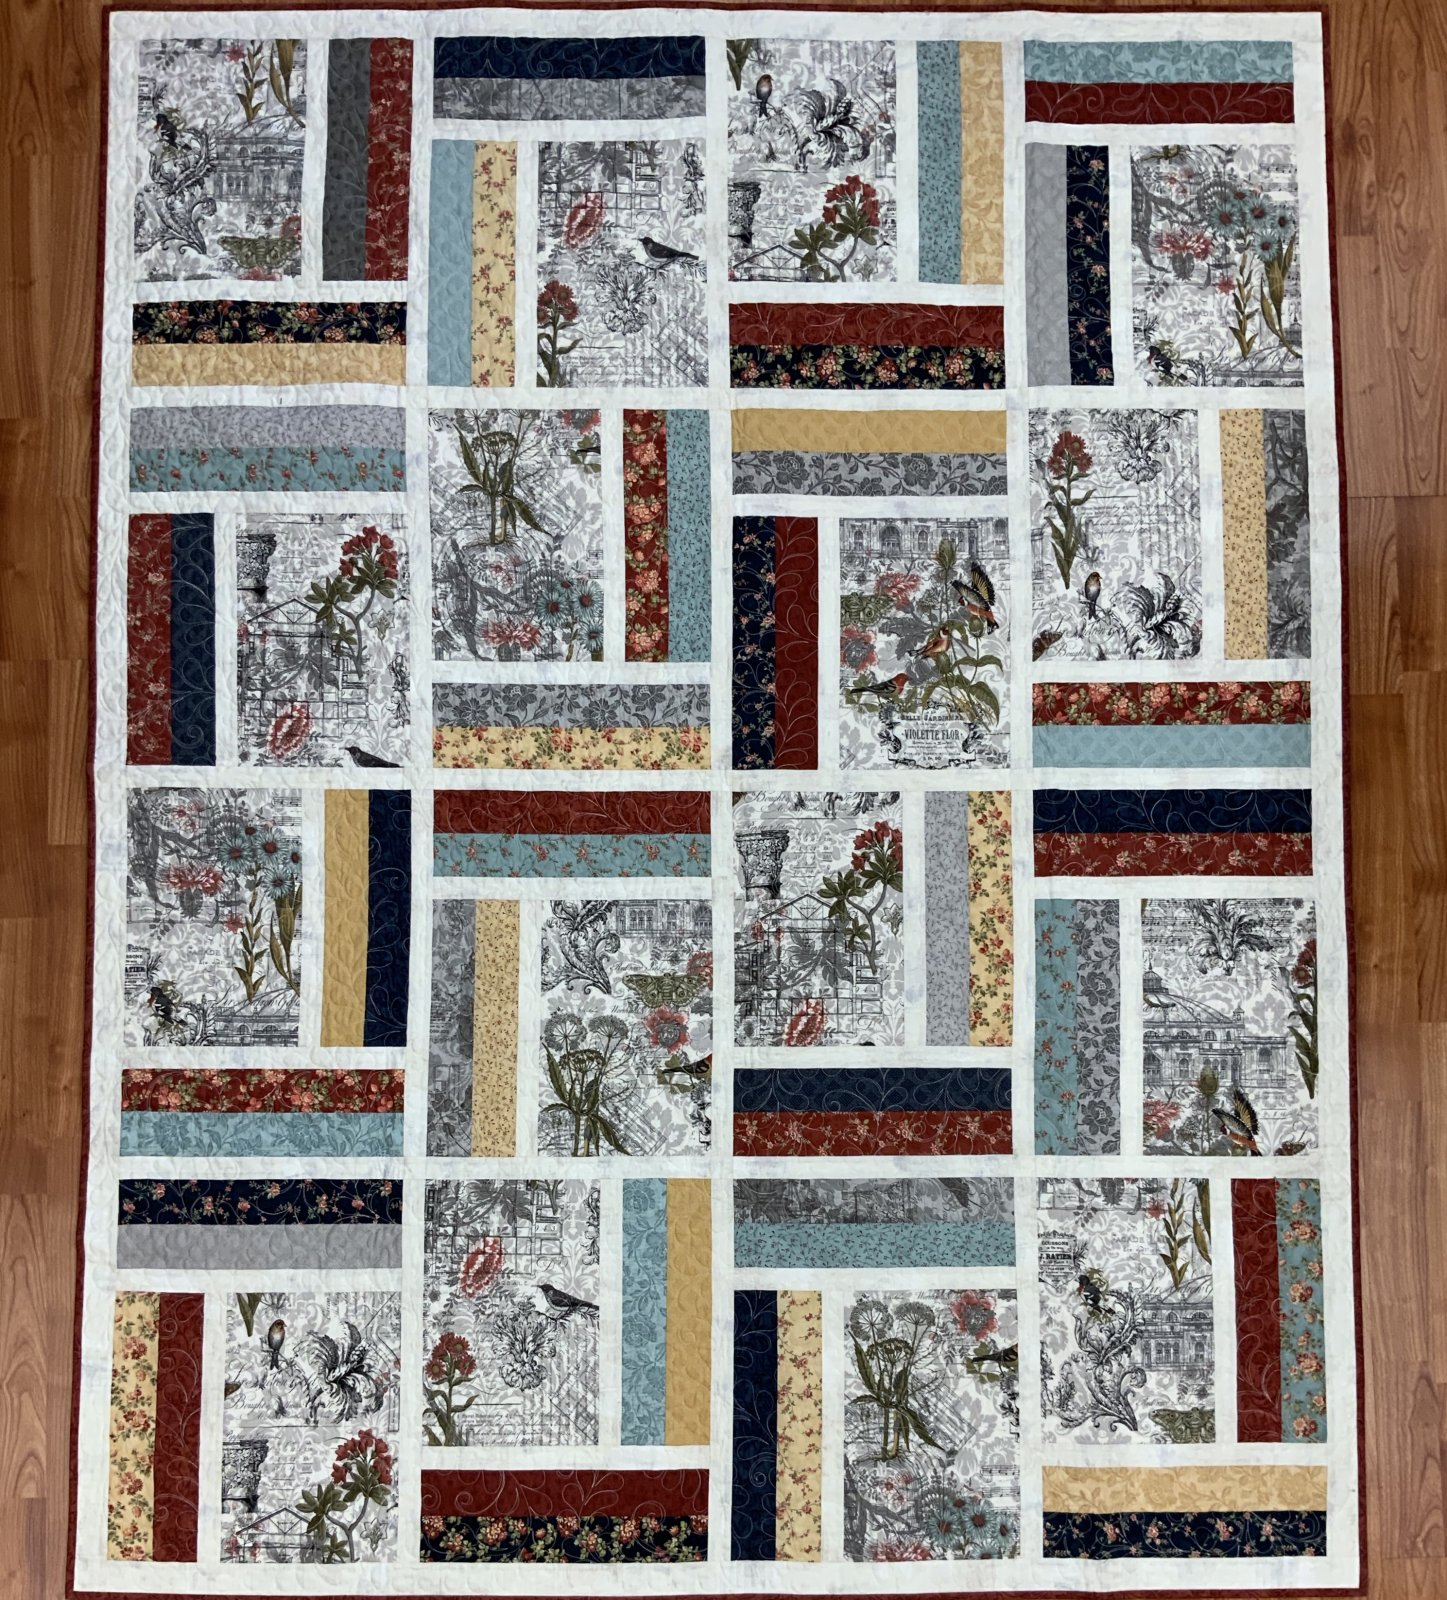 Reminiscence Quilt Kit by Doug Leko